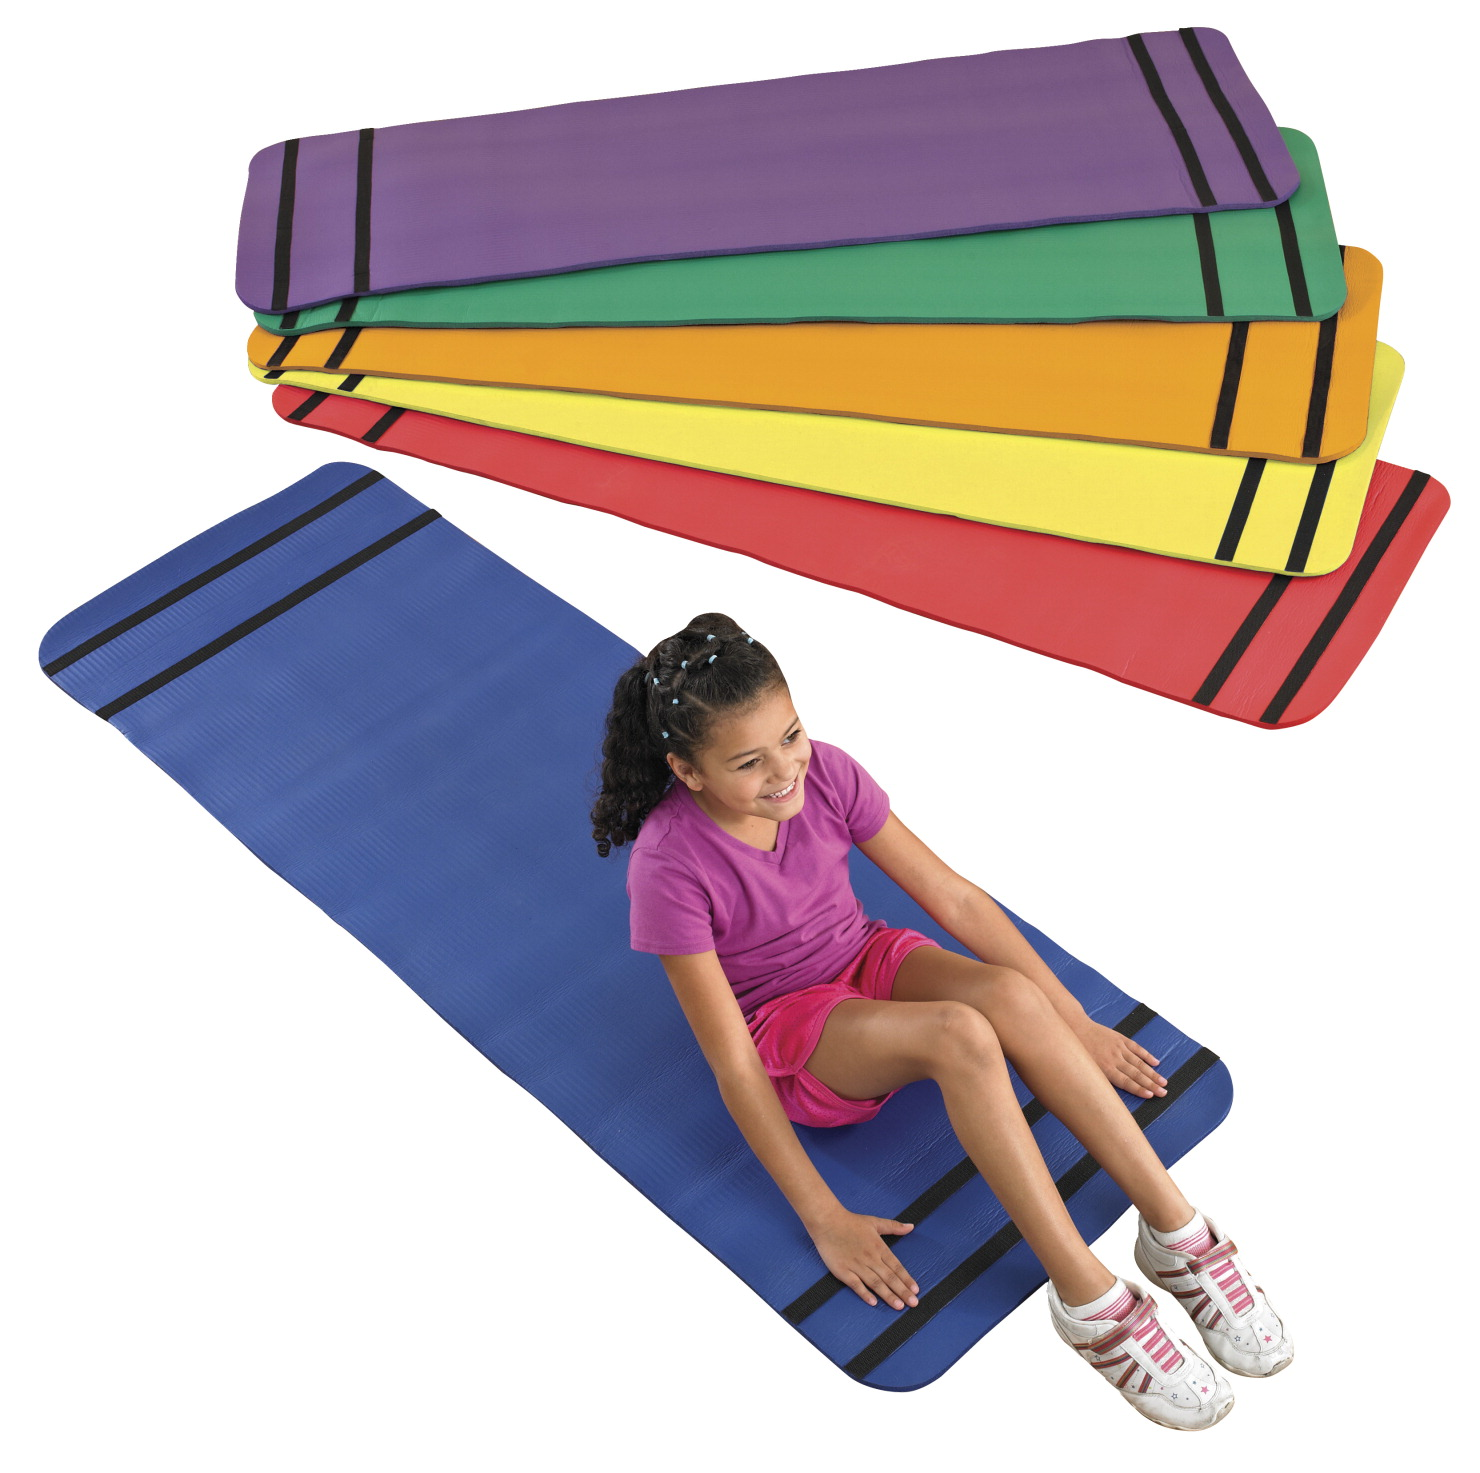 Sportime Curl Up Yoga Mats, Assorted Colors, Set of 6